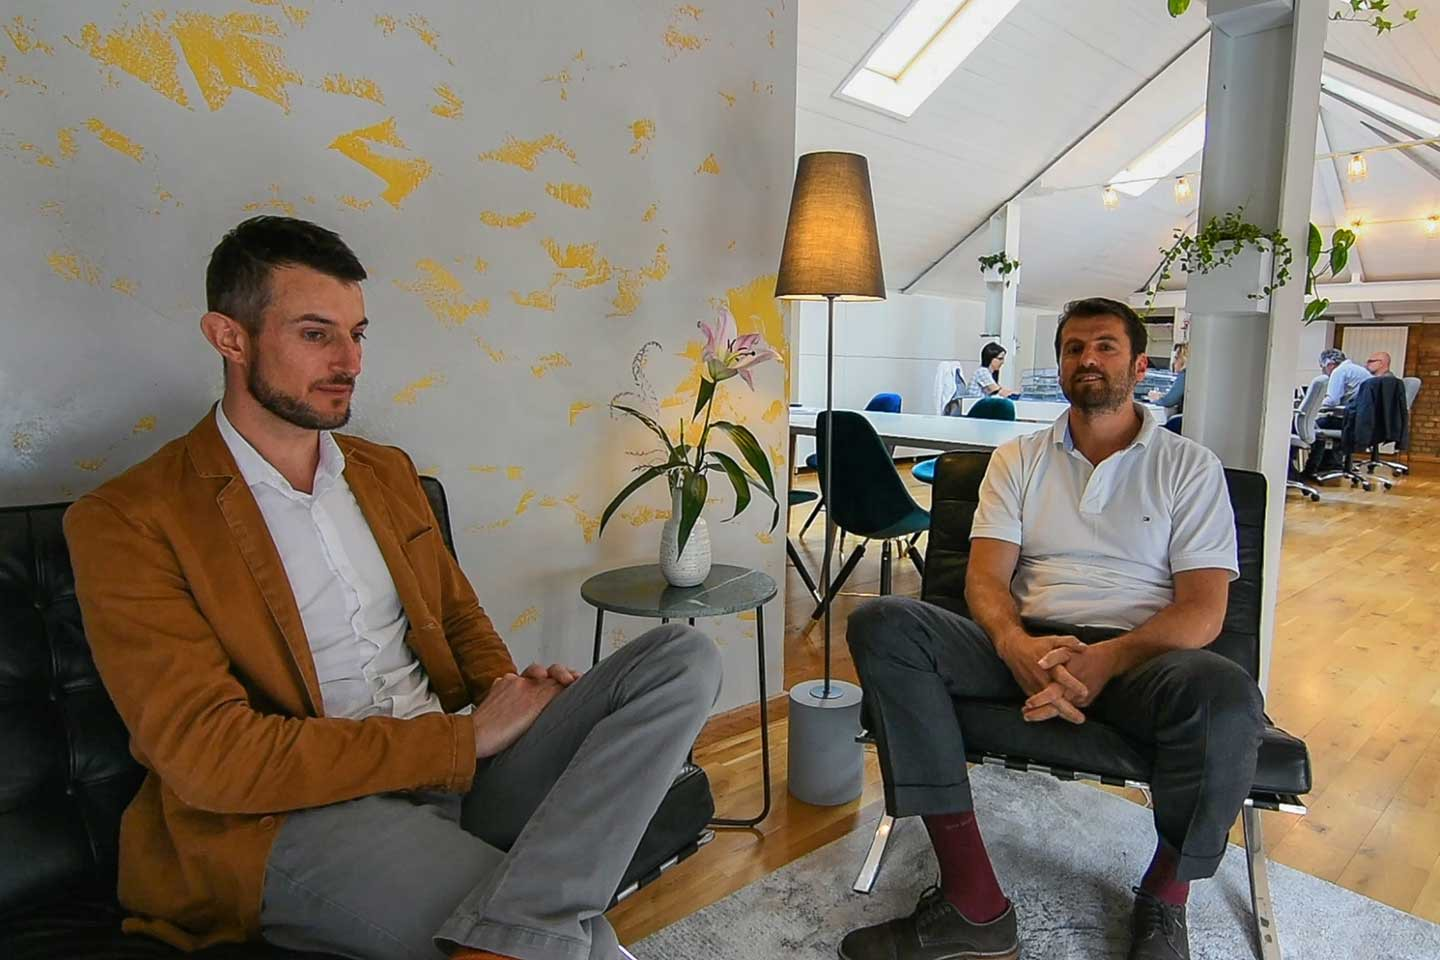 Our founder Marc sitting have an interview with the happy client at Avalon founder Miroslav Bogdantsaliev in the new office design reception area